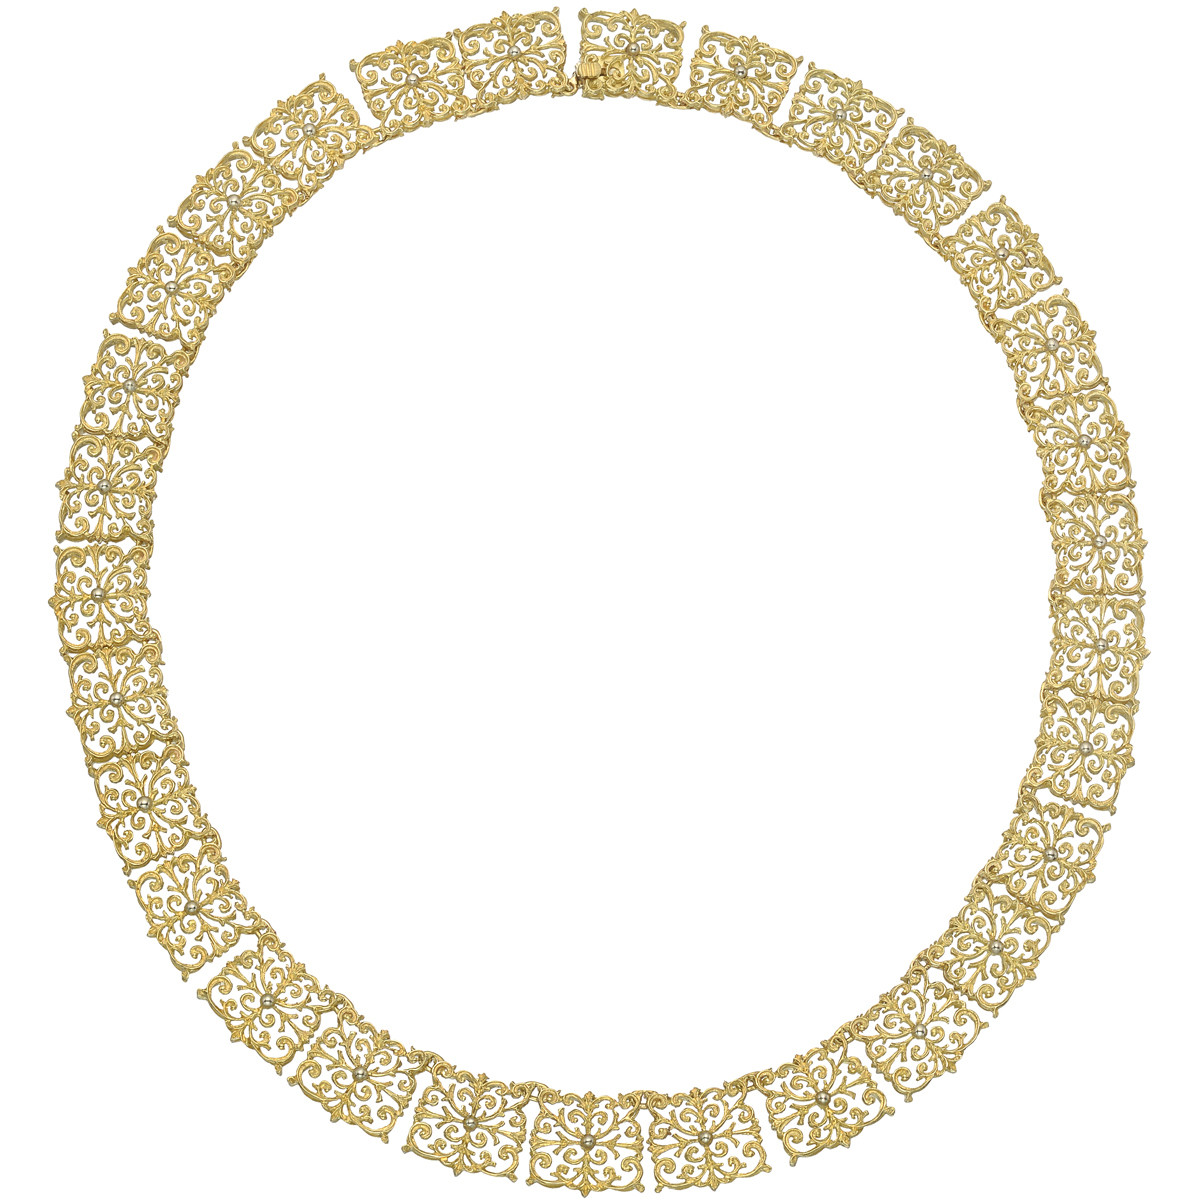 18k Yellow Gold Filigree Link Necklace